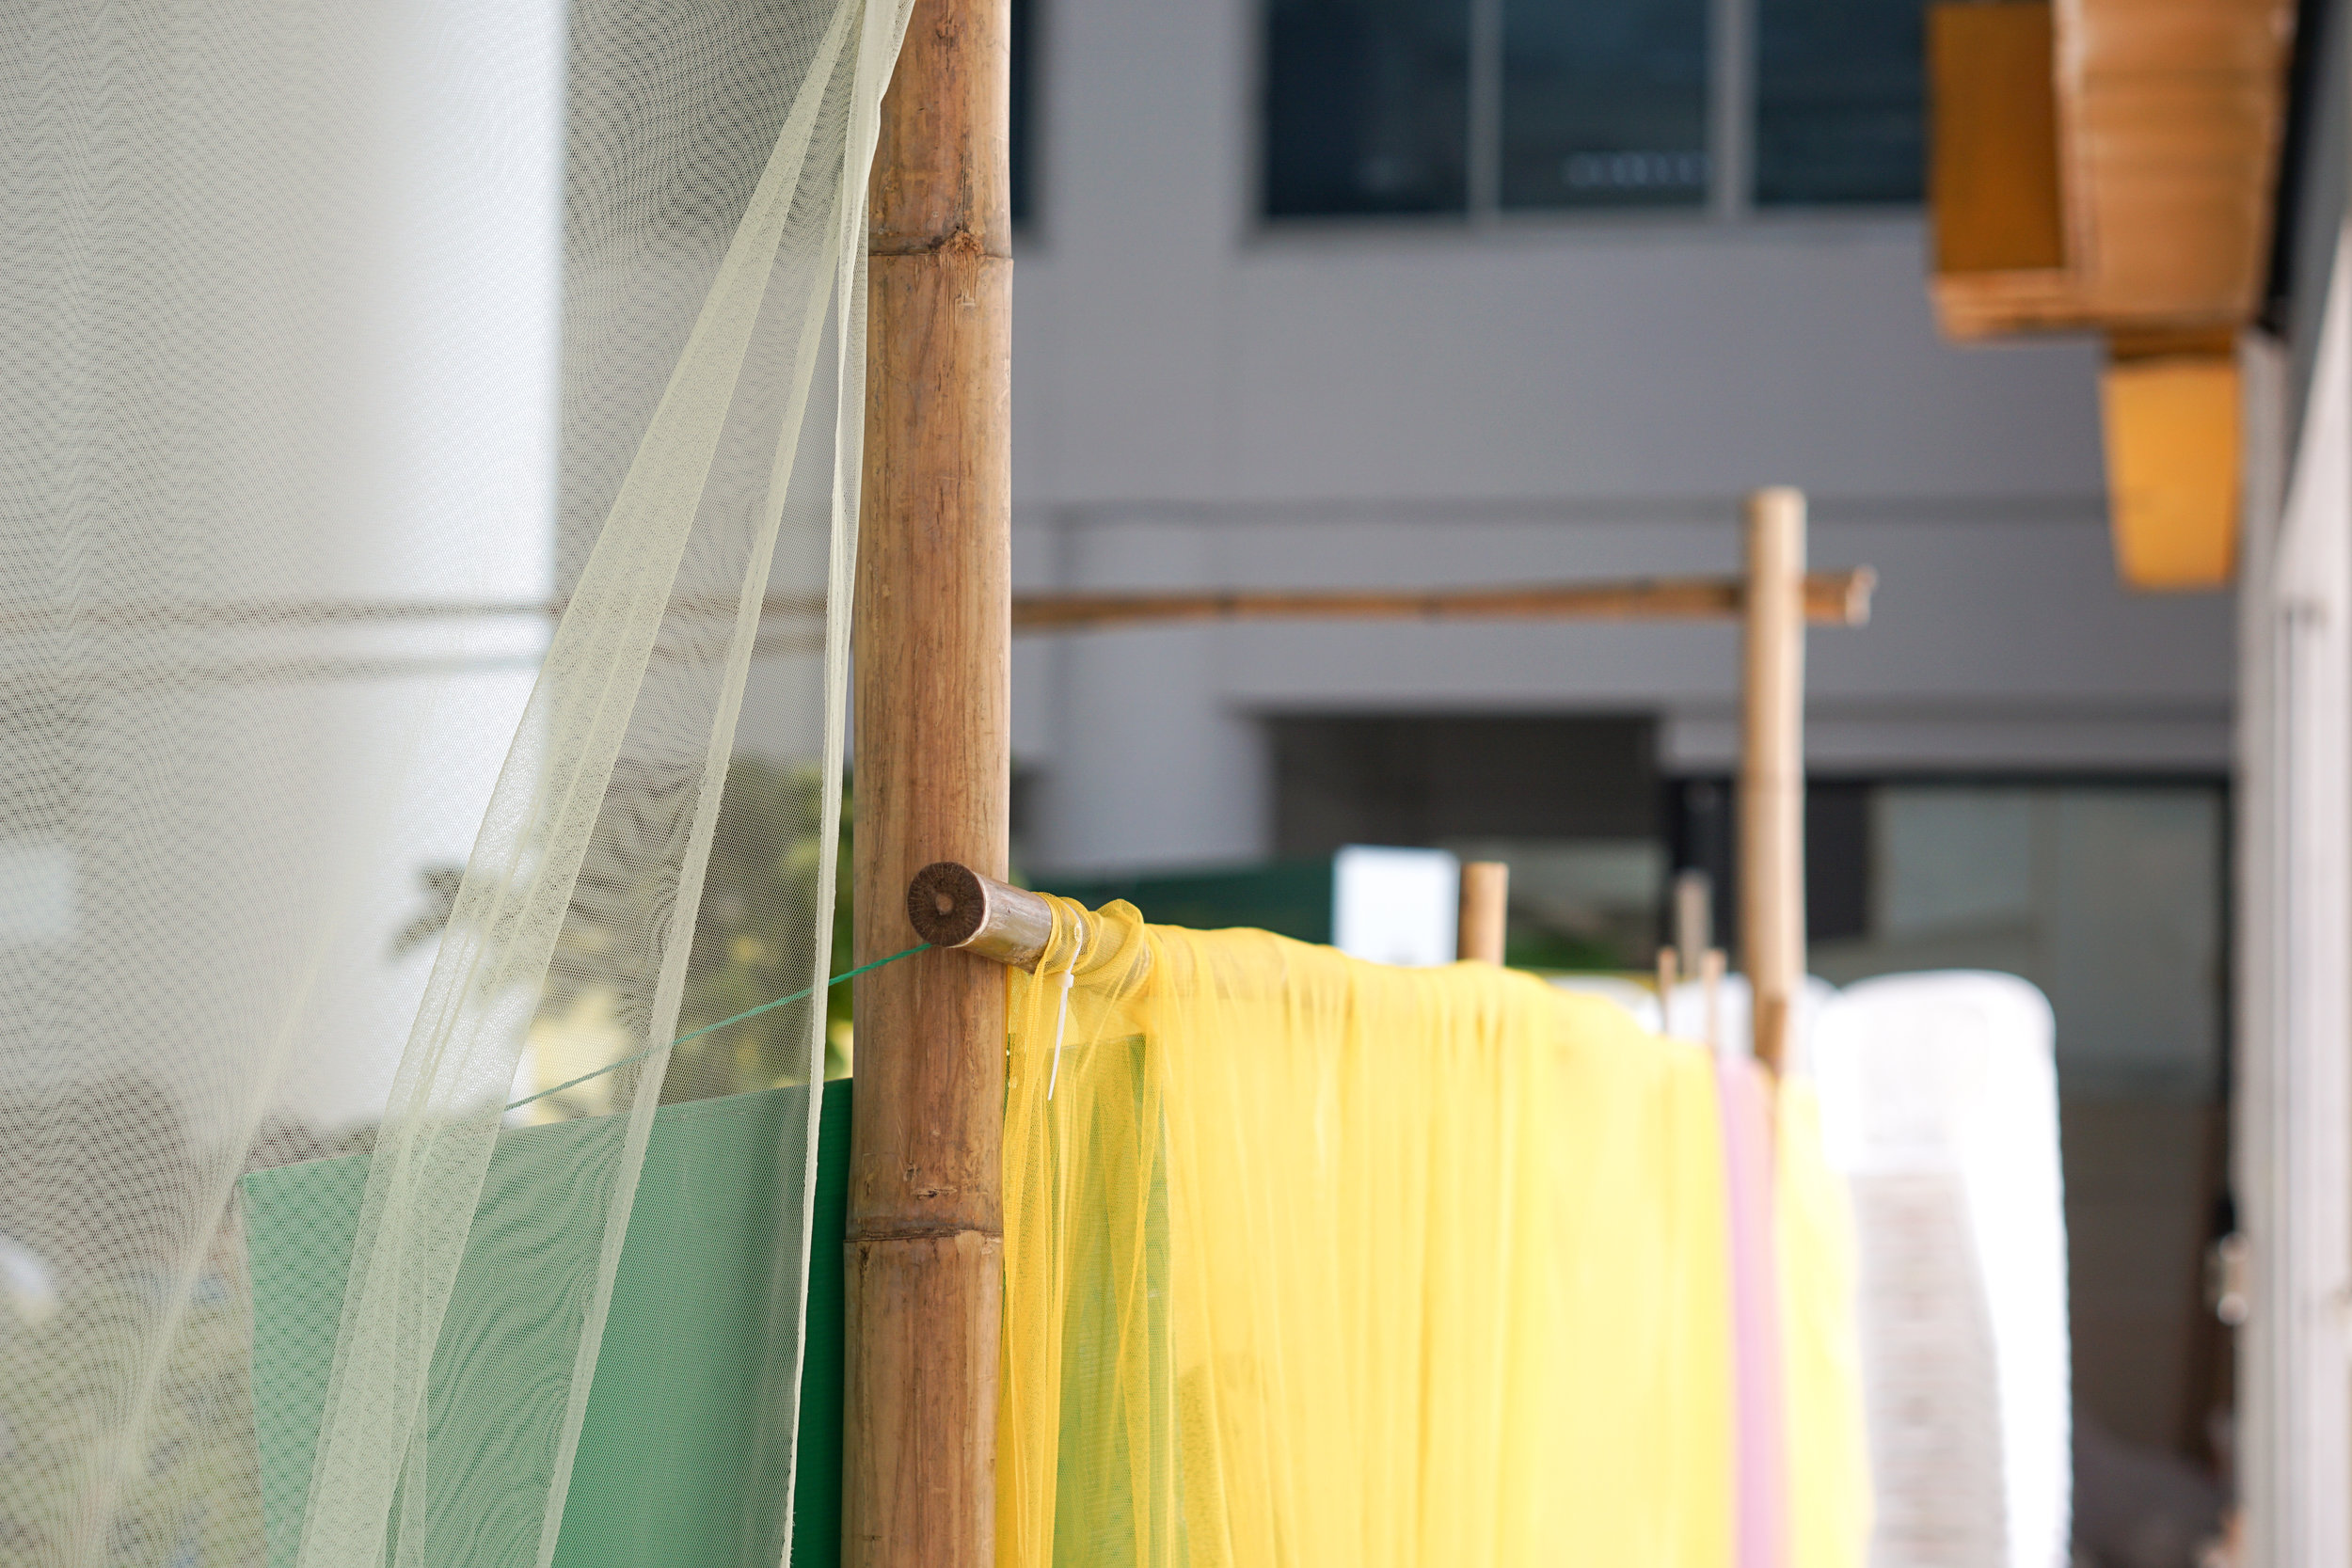 City Farming for a Sustainable City Event: Reusing materials and coloured fabrics